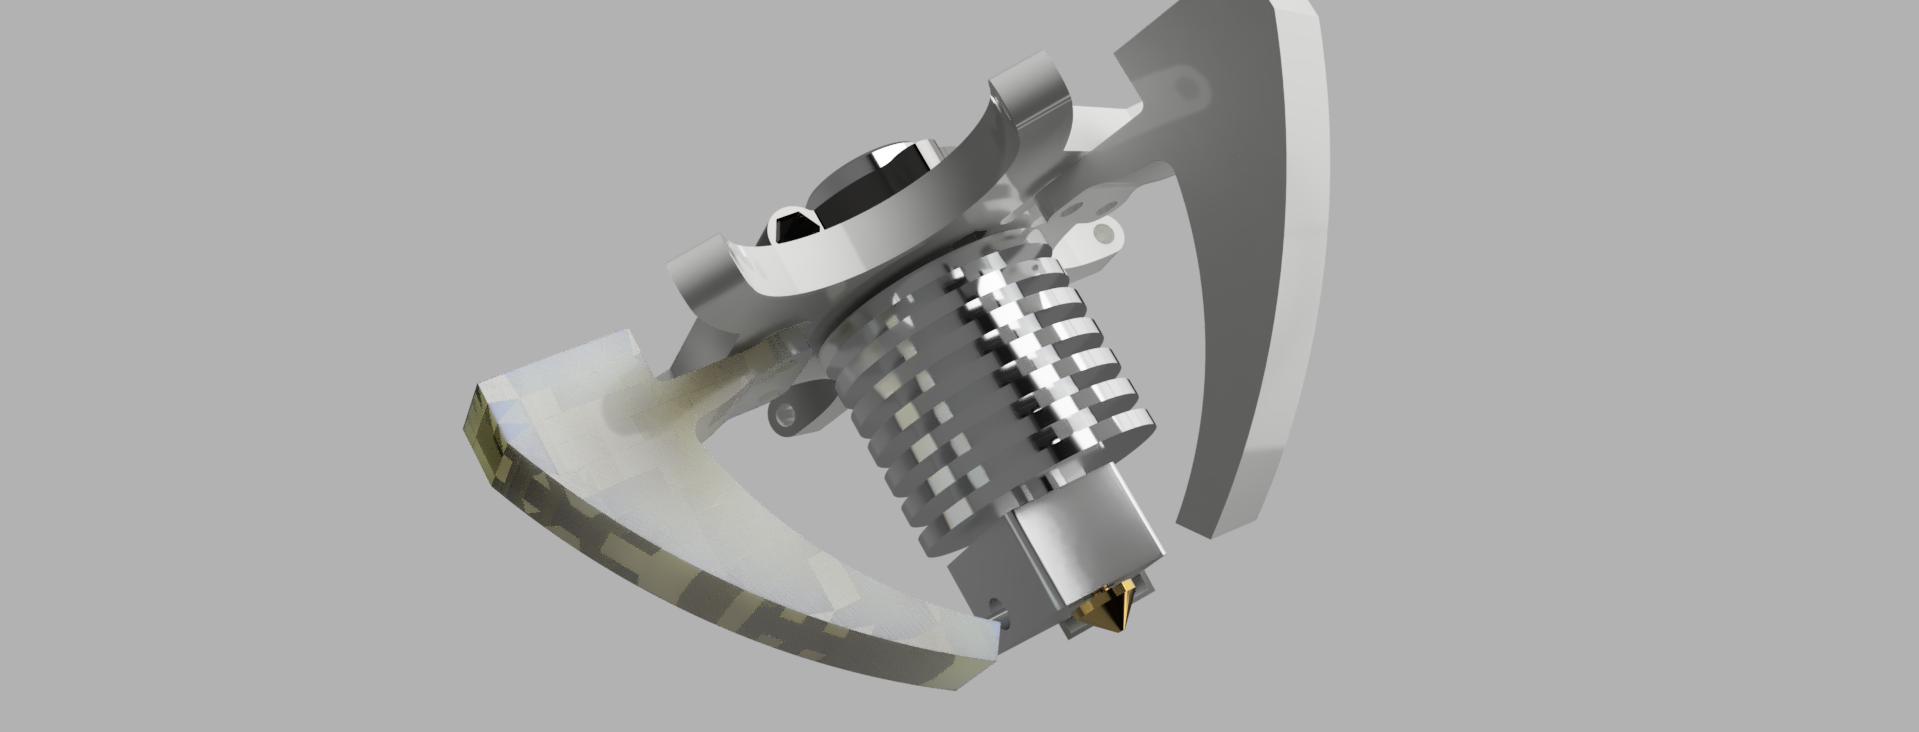 Effectorv1_2020-Jan-16_09-04-26PM-000_CustomizedView14913009118.png Download free STL file e3d V6 Kossel Rostock Delta effector • Template to 3D print, robC